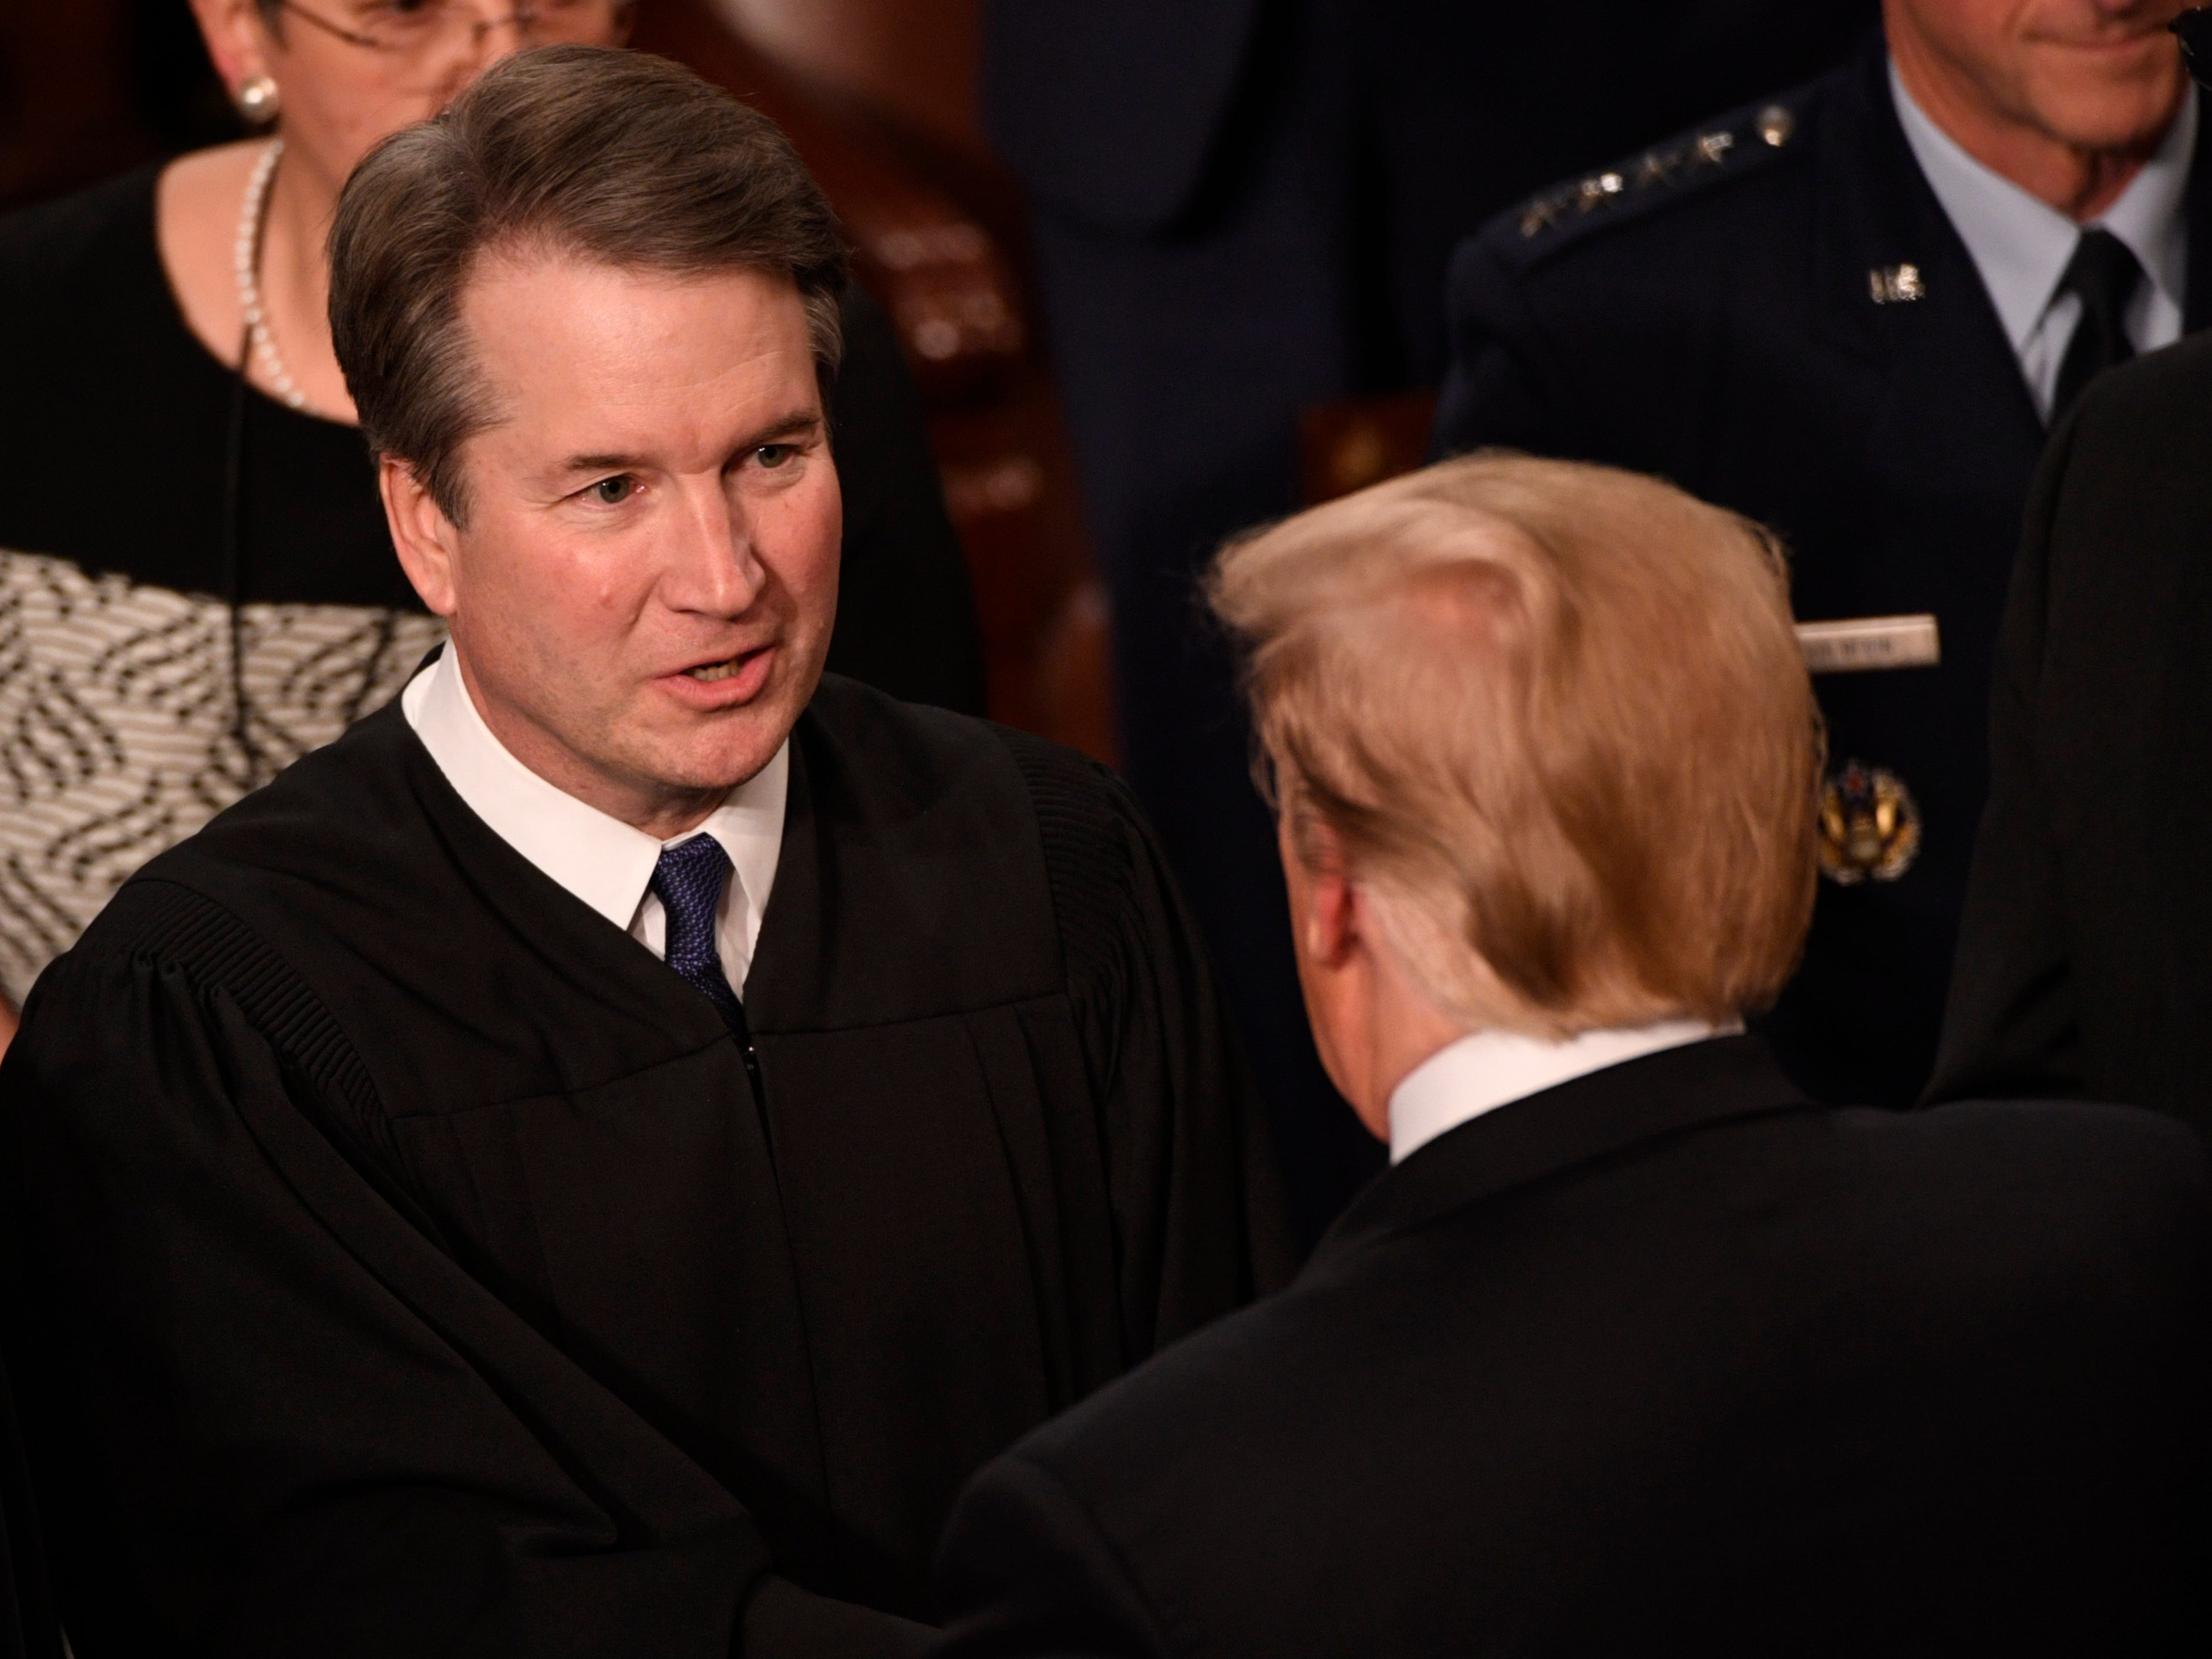 Justice Brett Kavanaugh greets President Donald Trump before he delivers the State of the Union address.